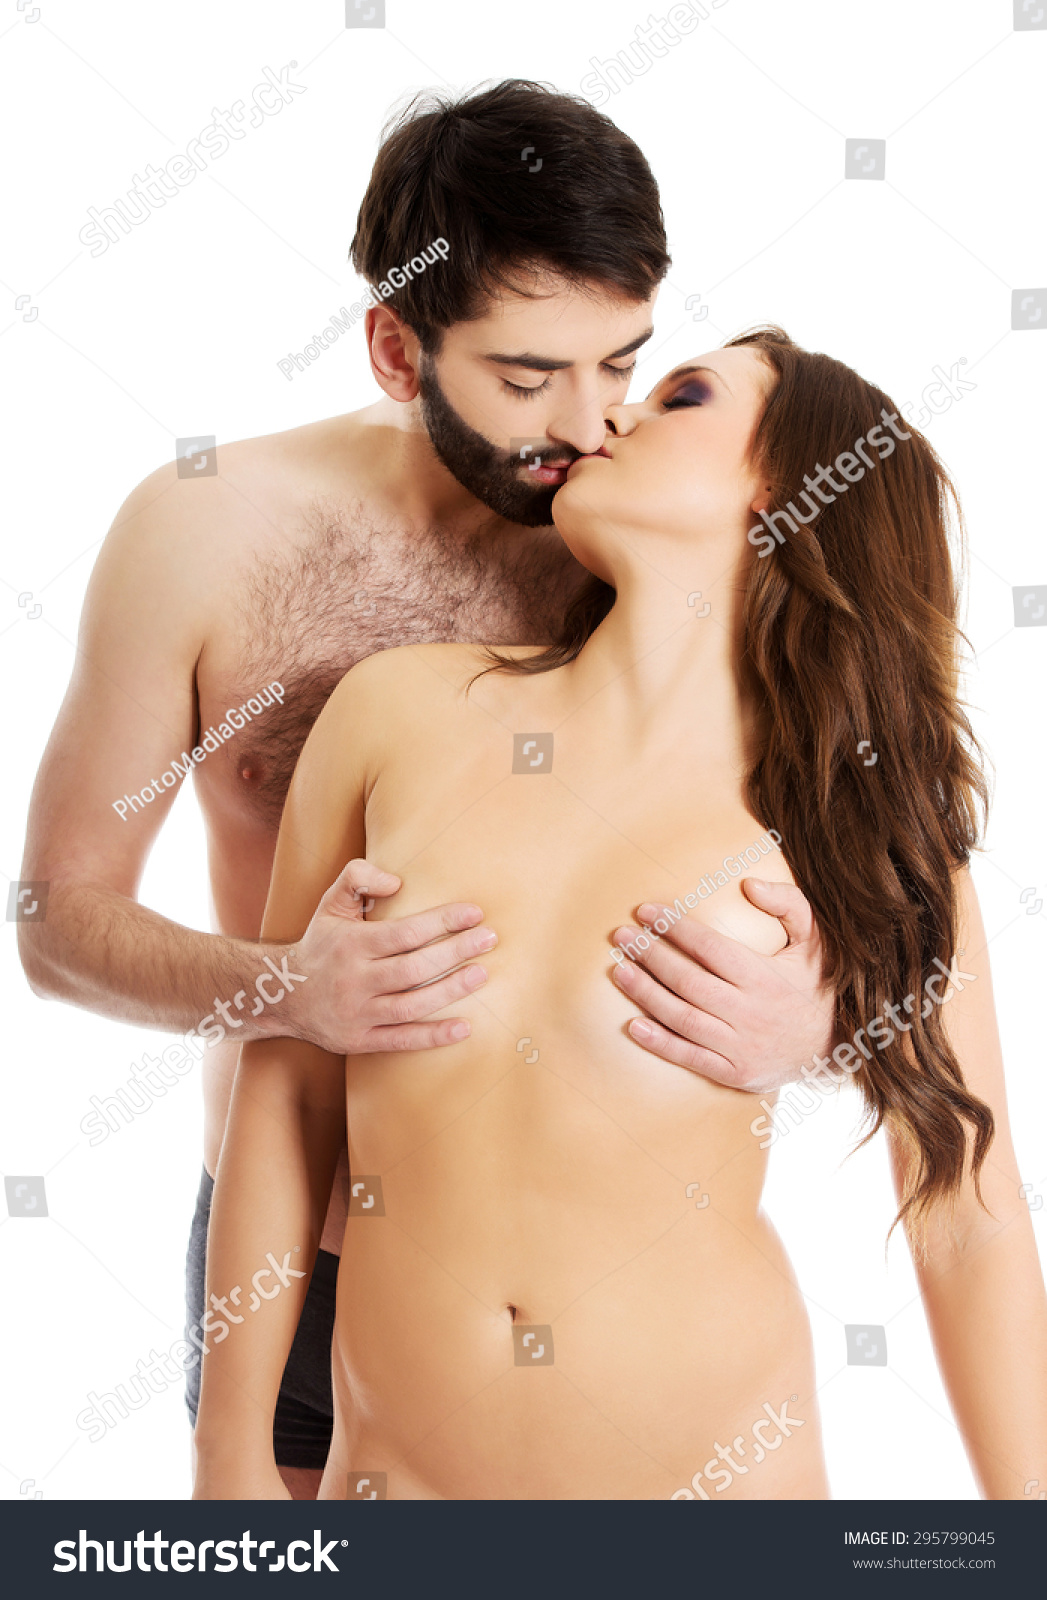 karla prime naked boobs and pussy image